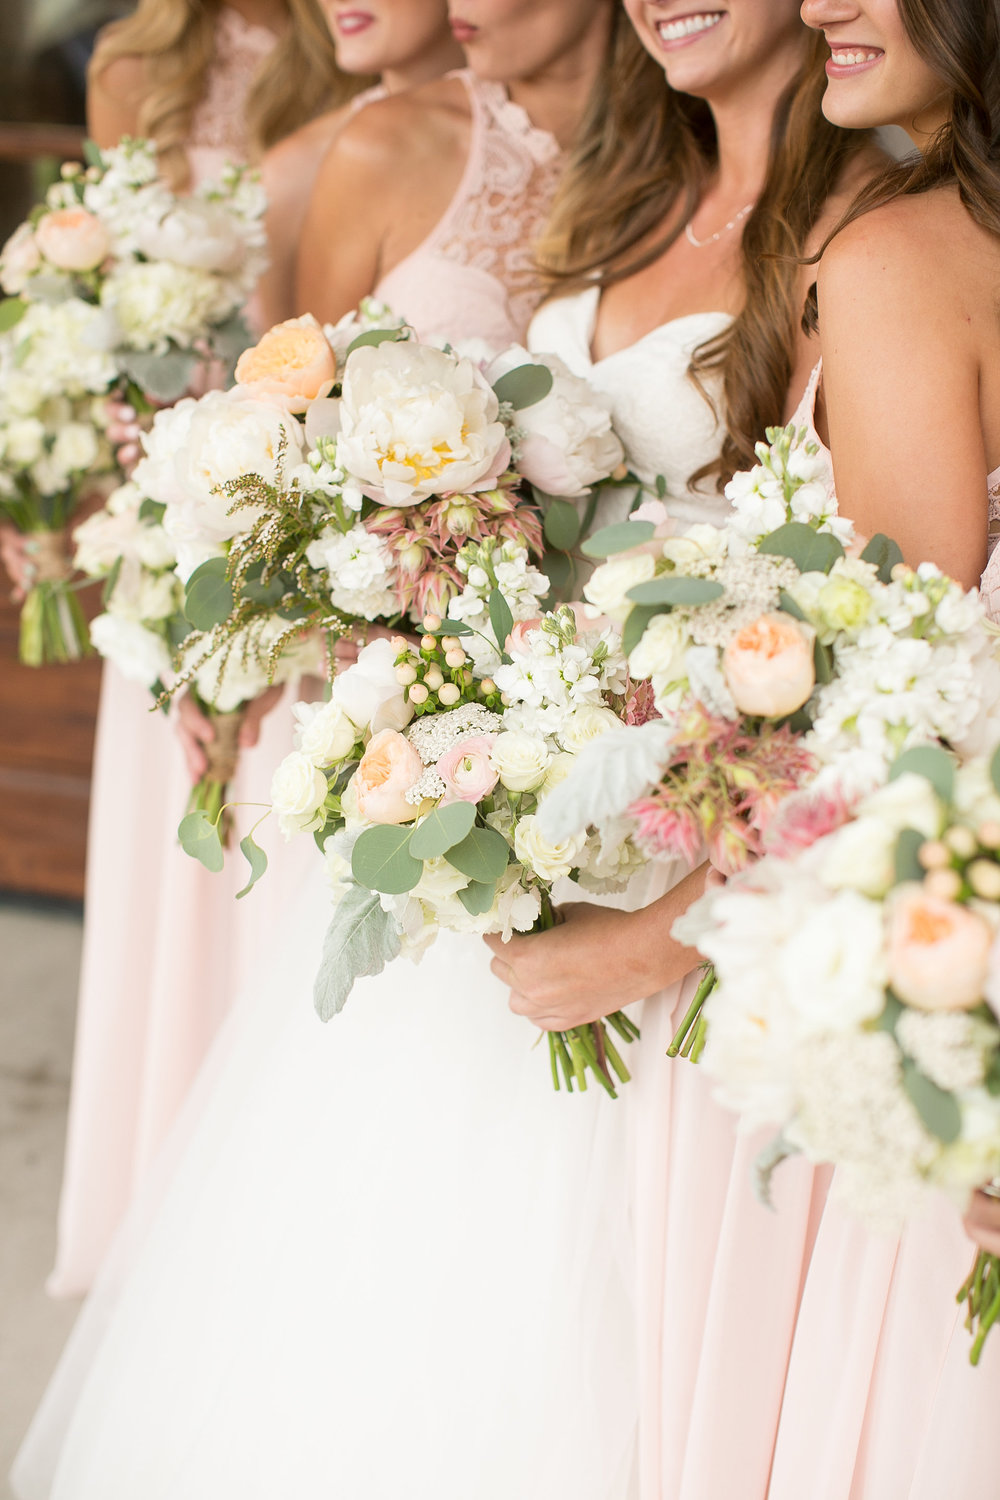 Flowers by Lace and Lilies, colorful bouquets, bridesmaid dresses, bridal bouquet, bridesmaid bouquets, colorado wedding, mountain wedding, coral wedding flowers, peach and yellow, blush and white